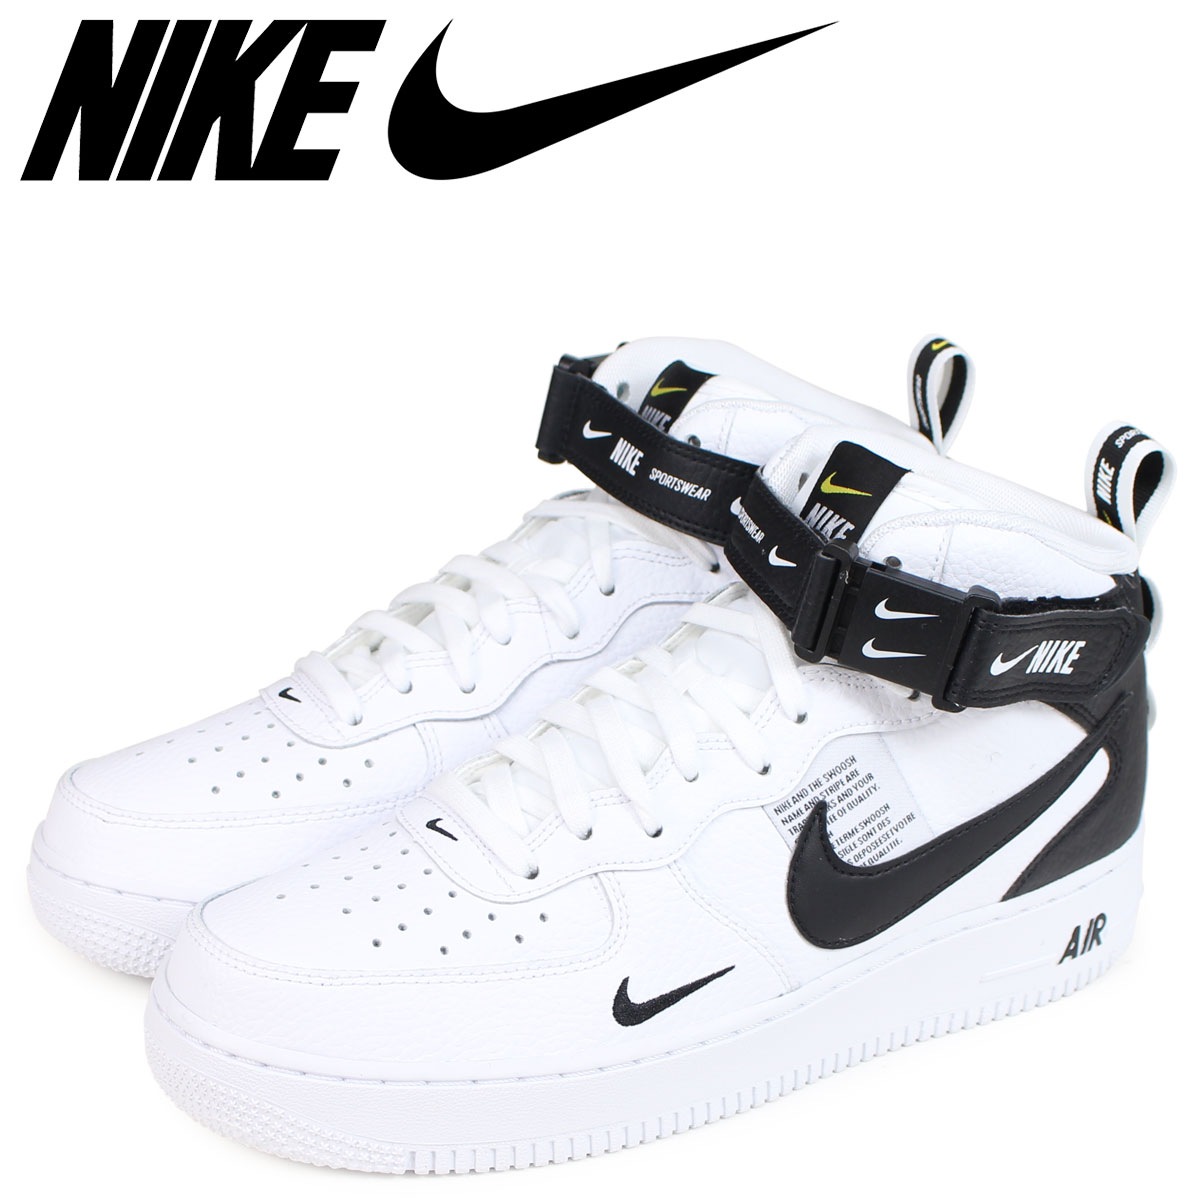 NIKE Nike air force 1 sneakers men AIR FORCE 1 MID 07 LV8 804,609-103 white  white